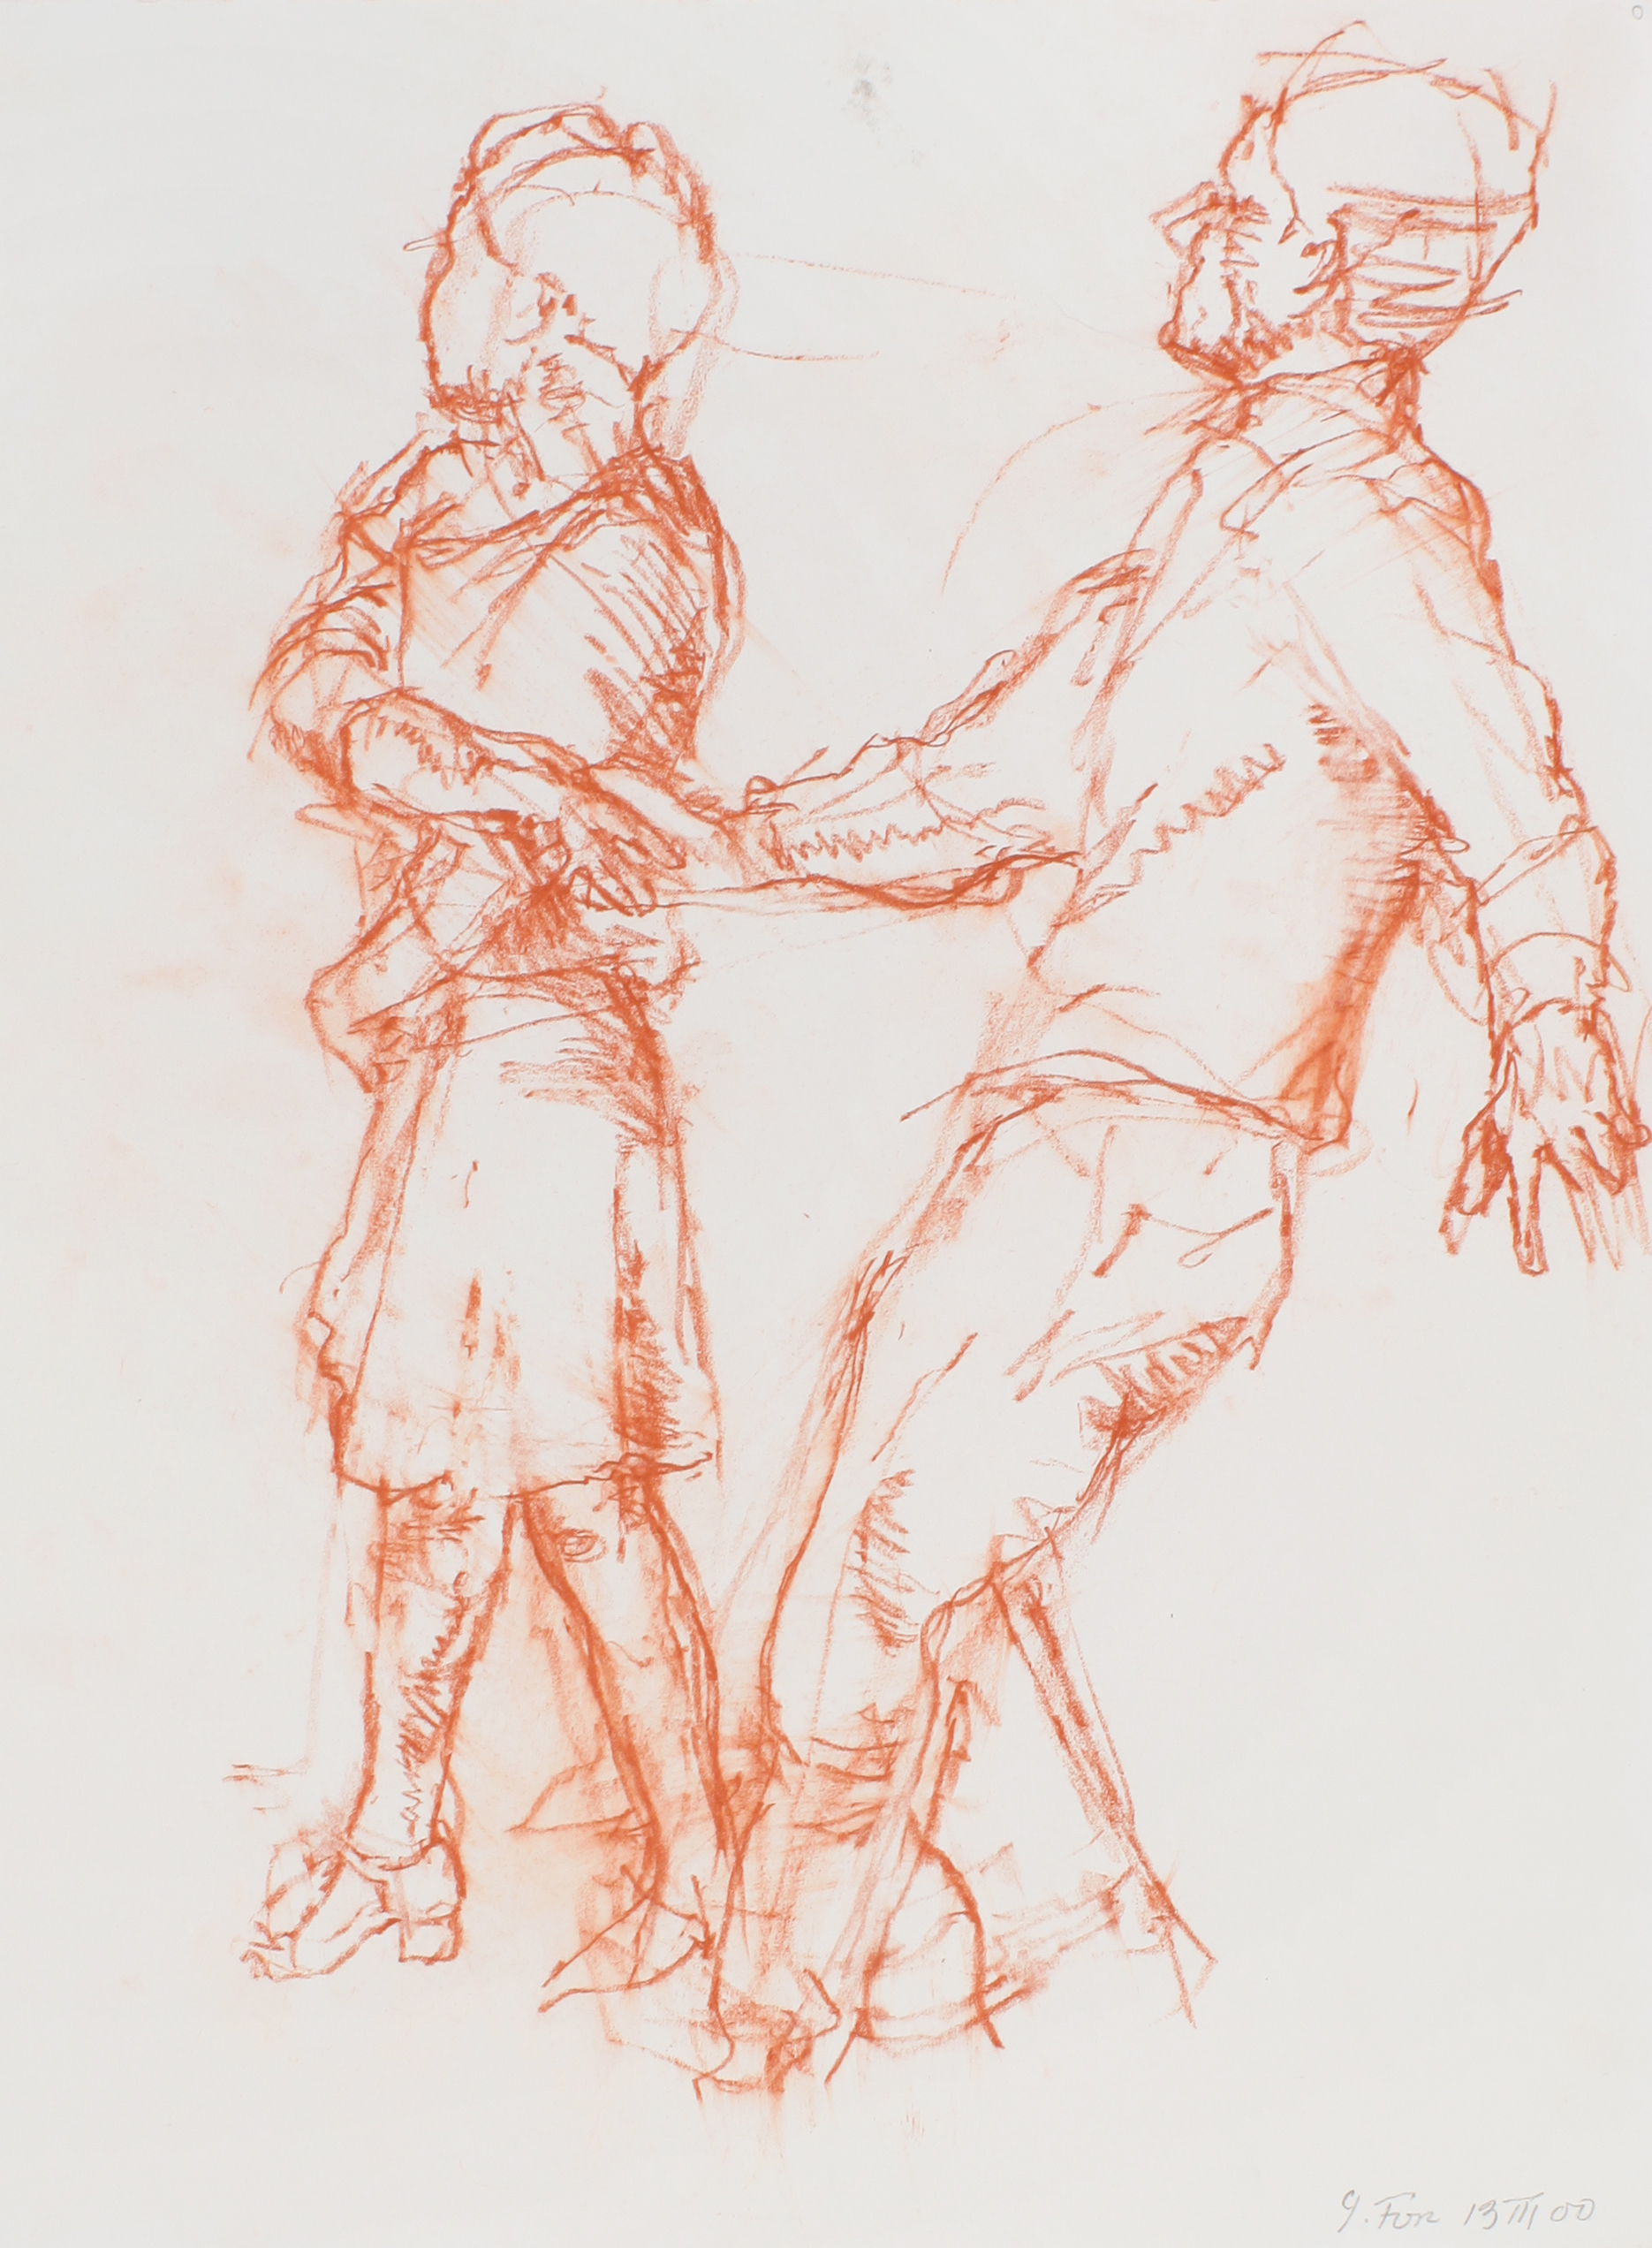 2000_Couple_Walking_Holding_Hands_red_conté_on_paper_15x11in_WPF550.jpg